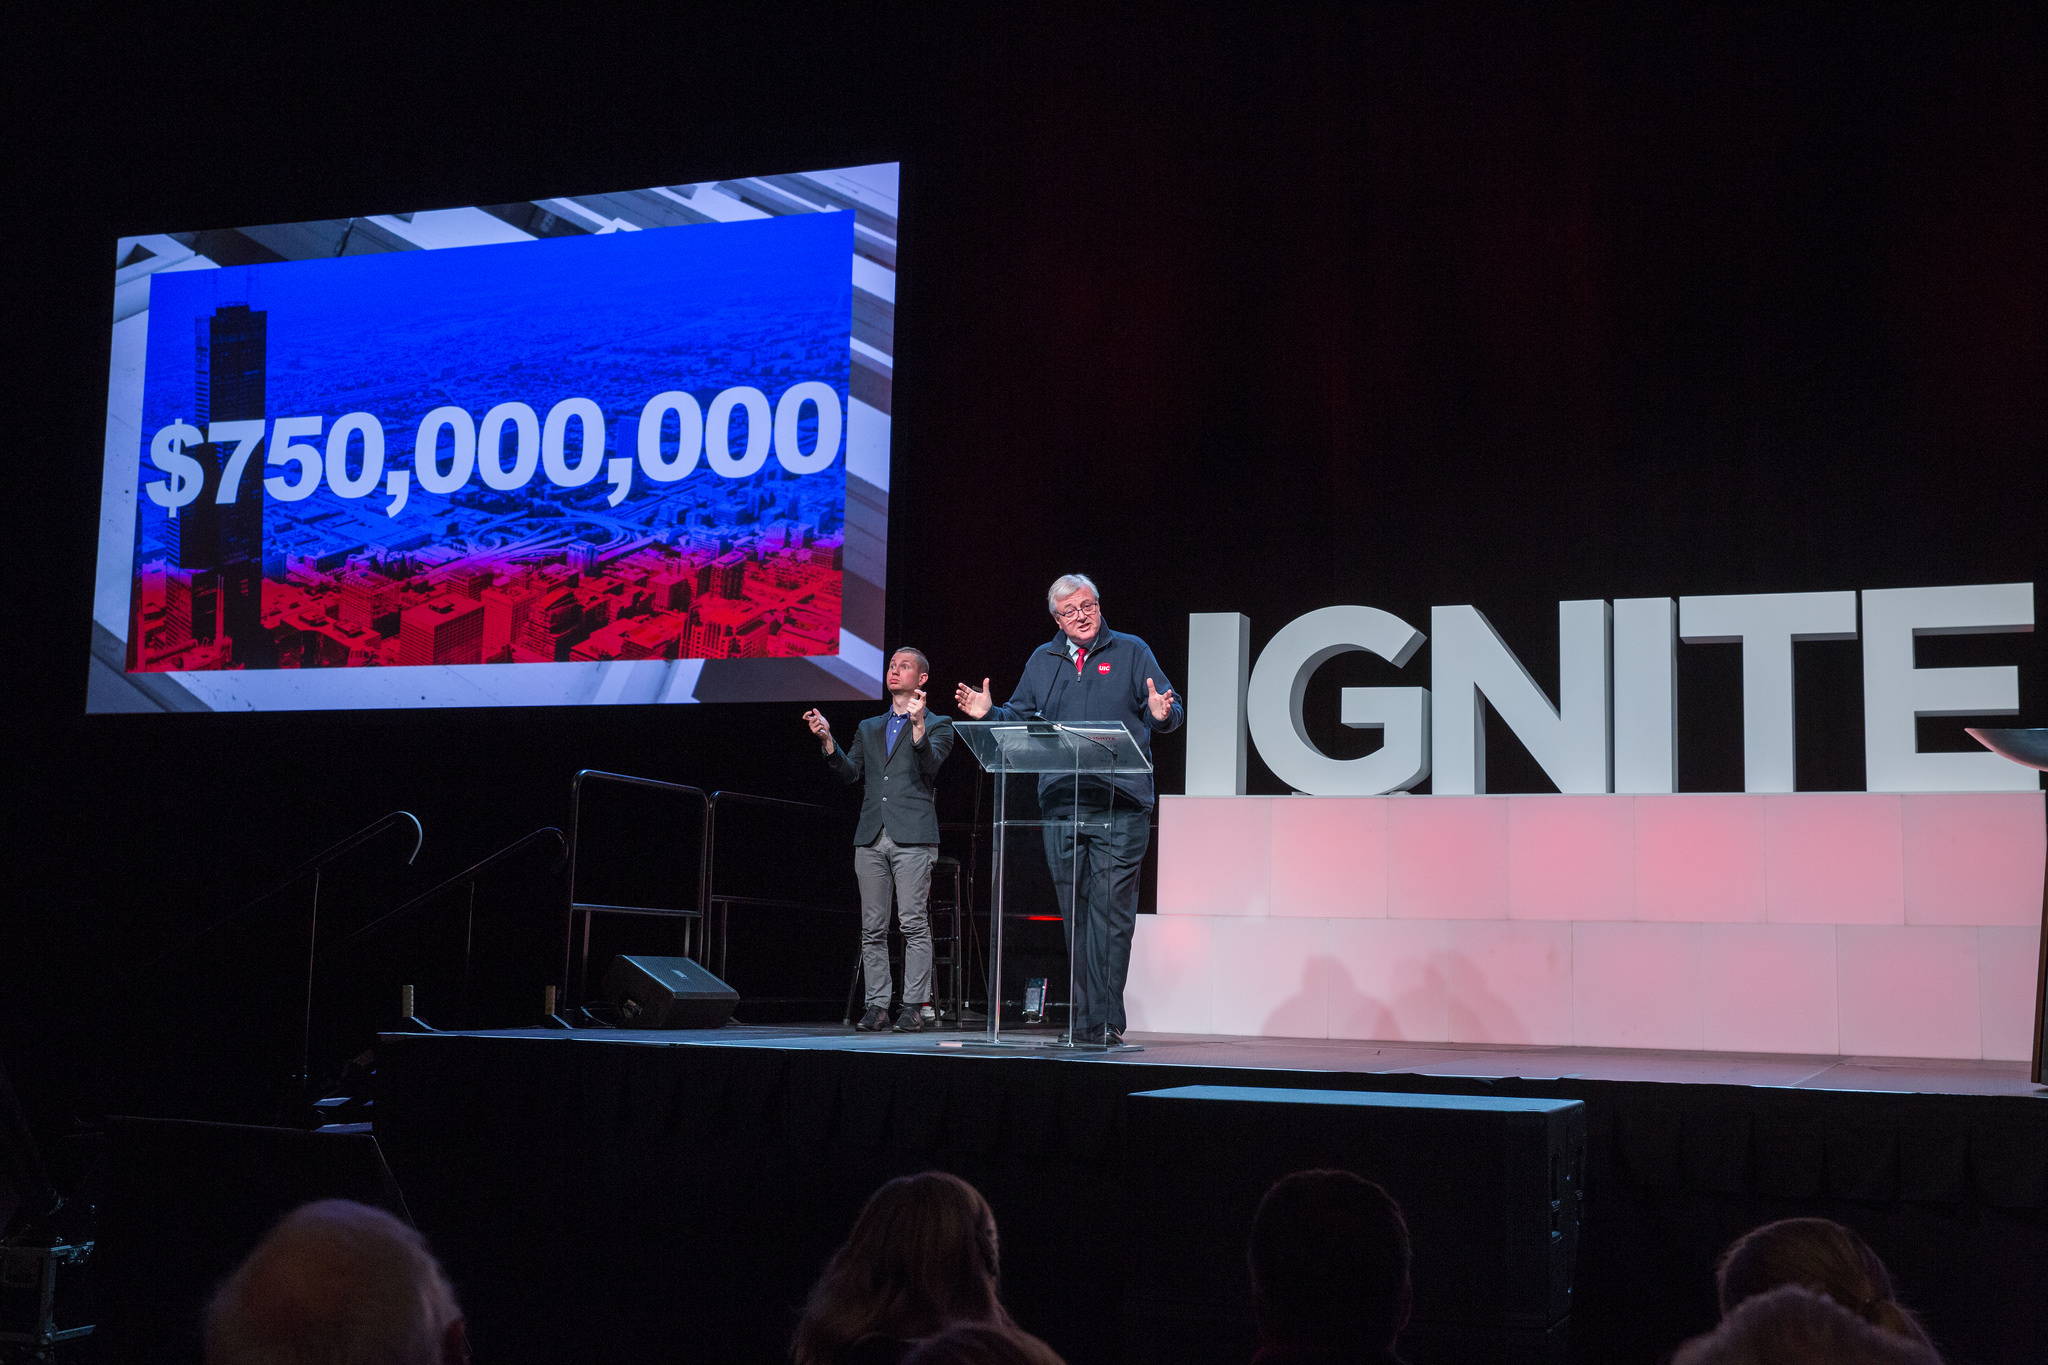 chancellor amiridis addresses audience at IGNITE campaign launch